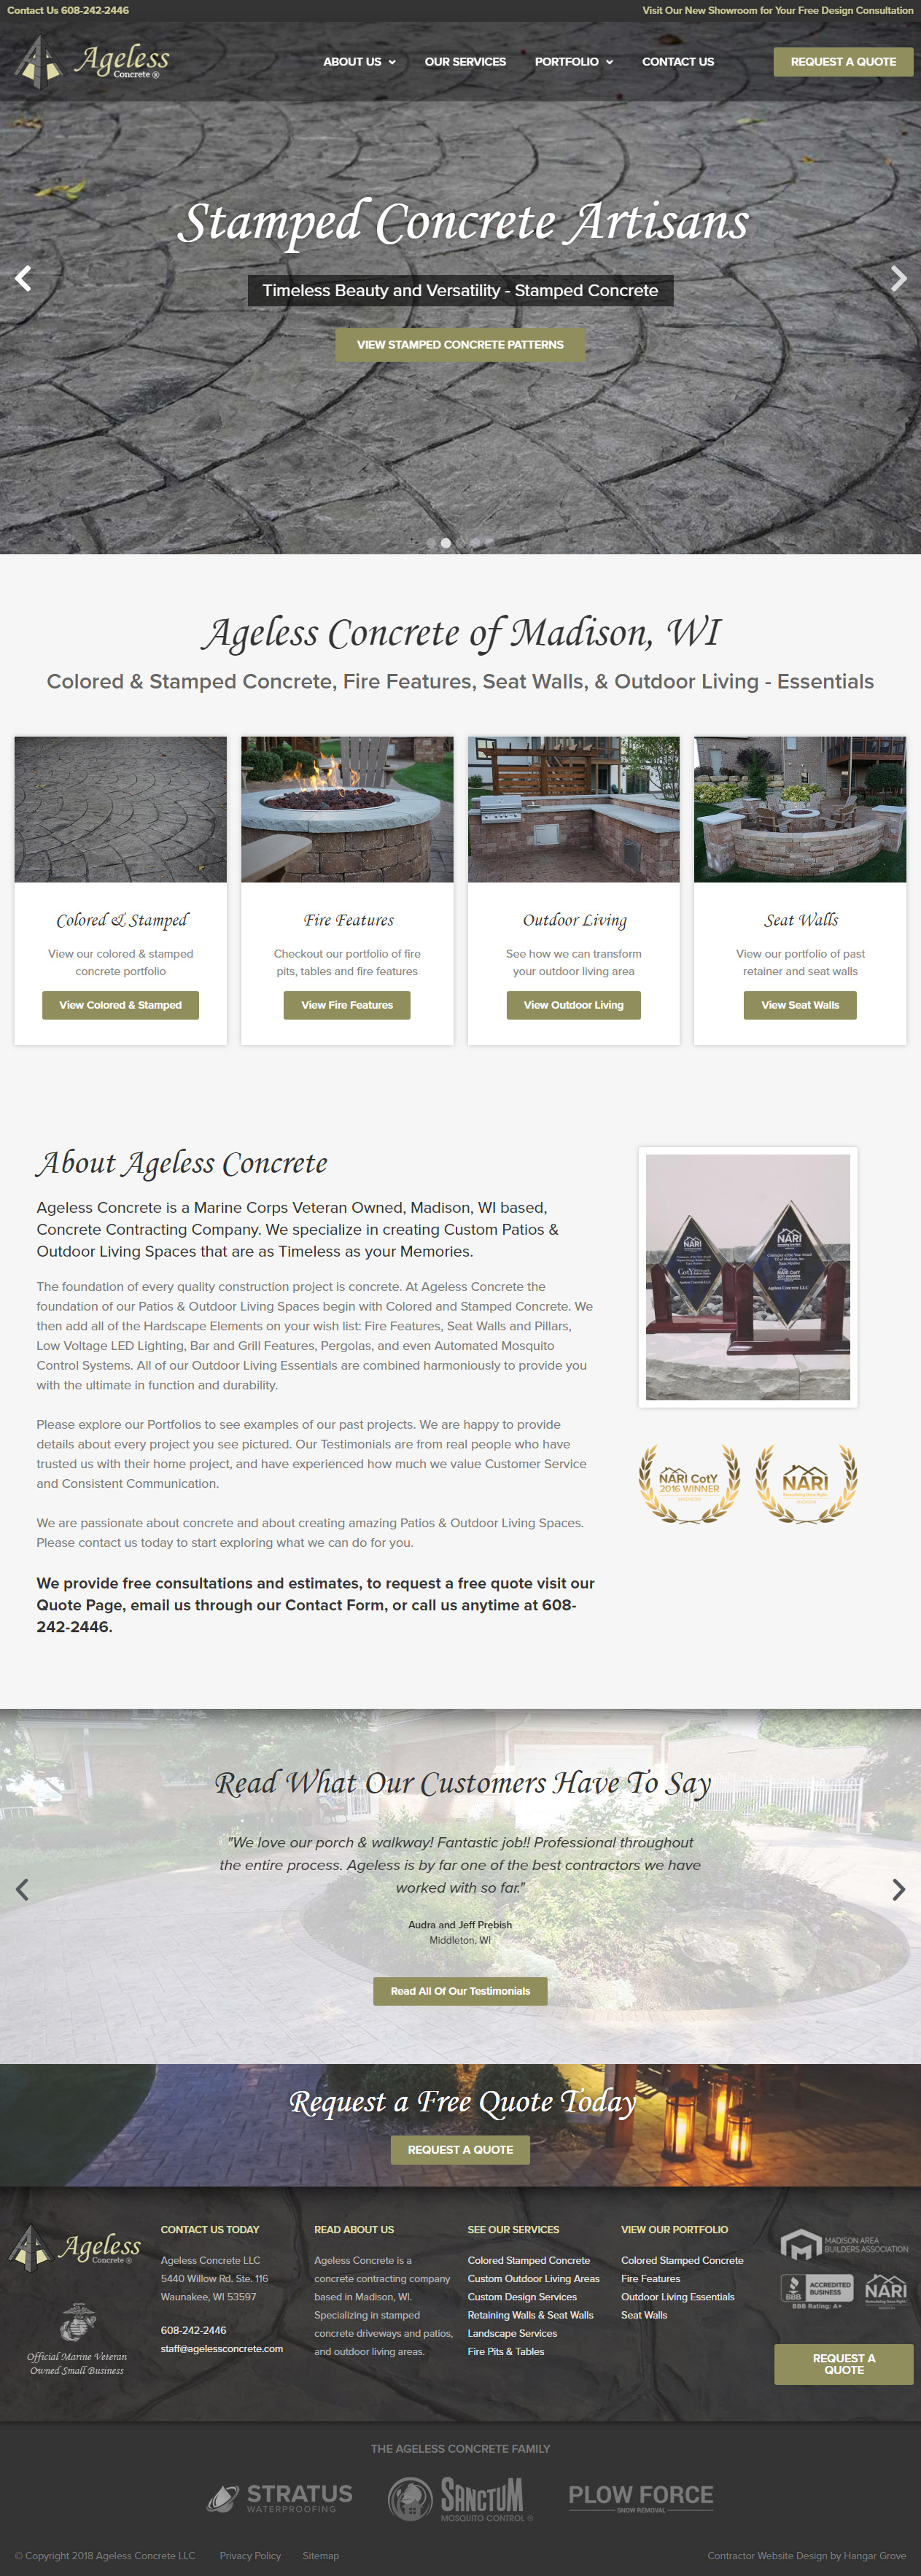 Ageless Concrete Contractor Web Design Case Study Homepage